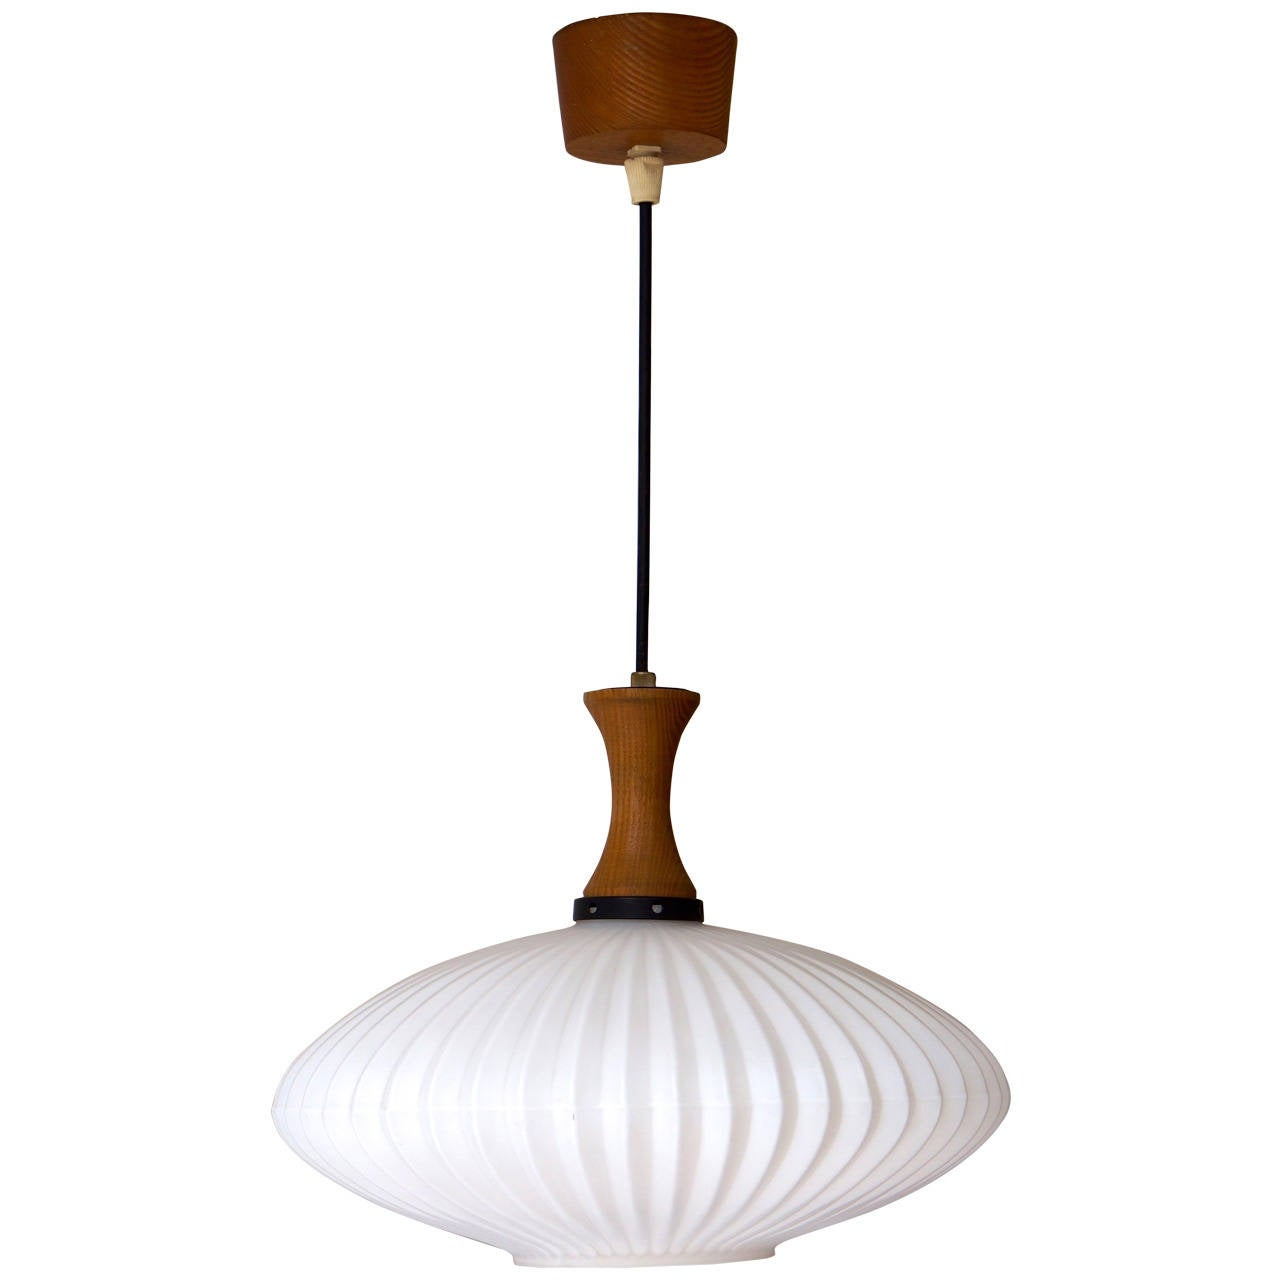 Mid century danish glass and wood chandelier pendant for Danish modern light fixtures